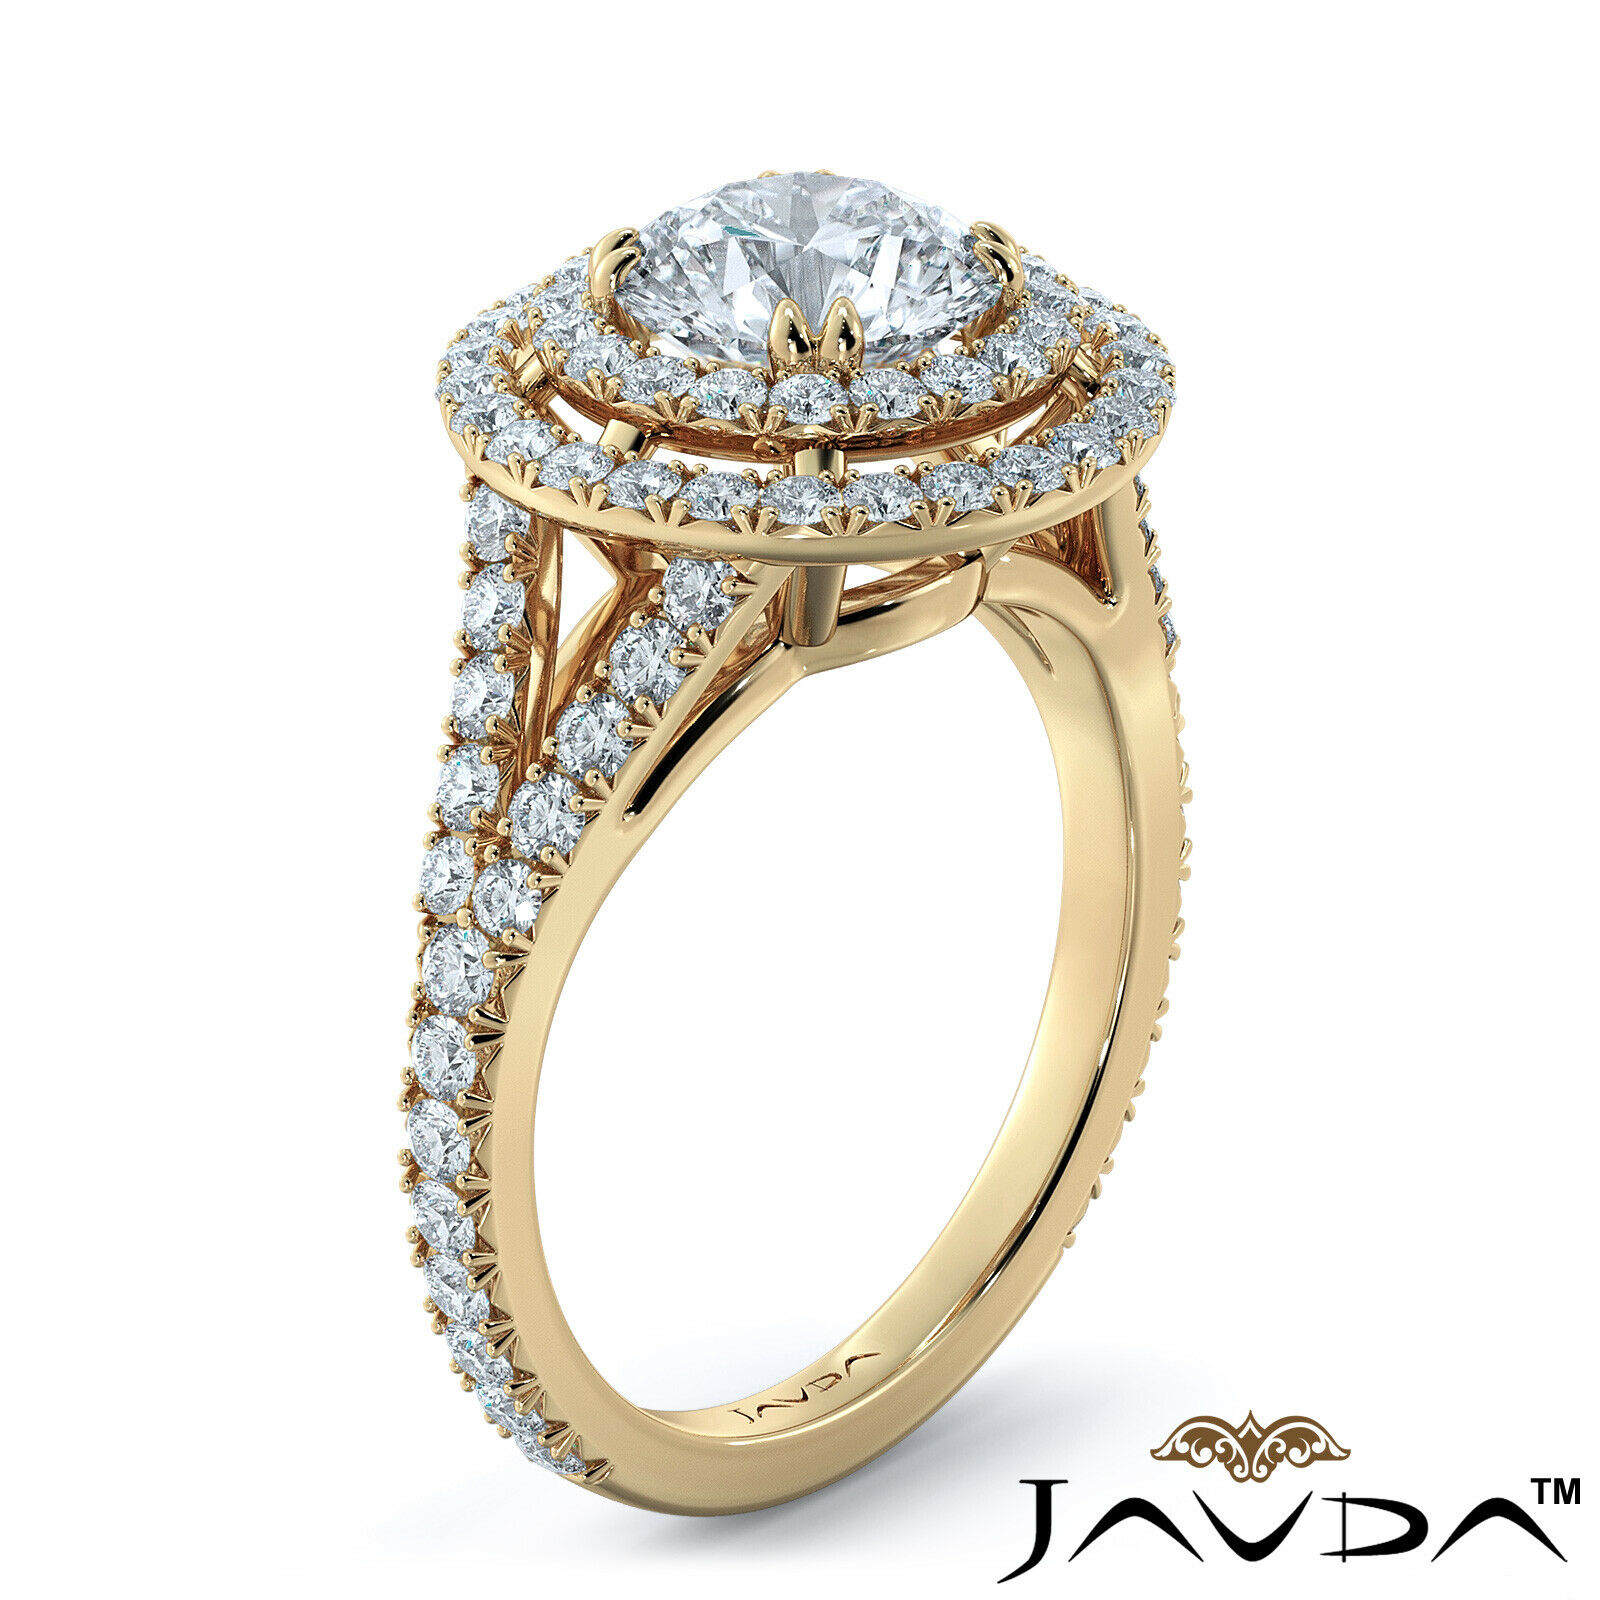 2.05ct French Pave Gala Halo Round Diamond Engagement Ring GIA F-VVS1 White Gold 8